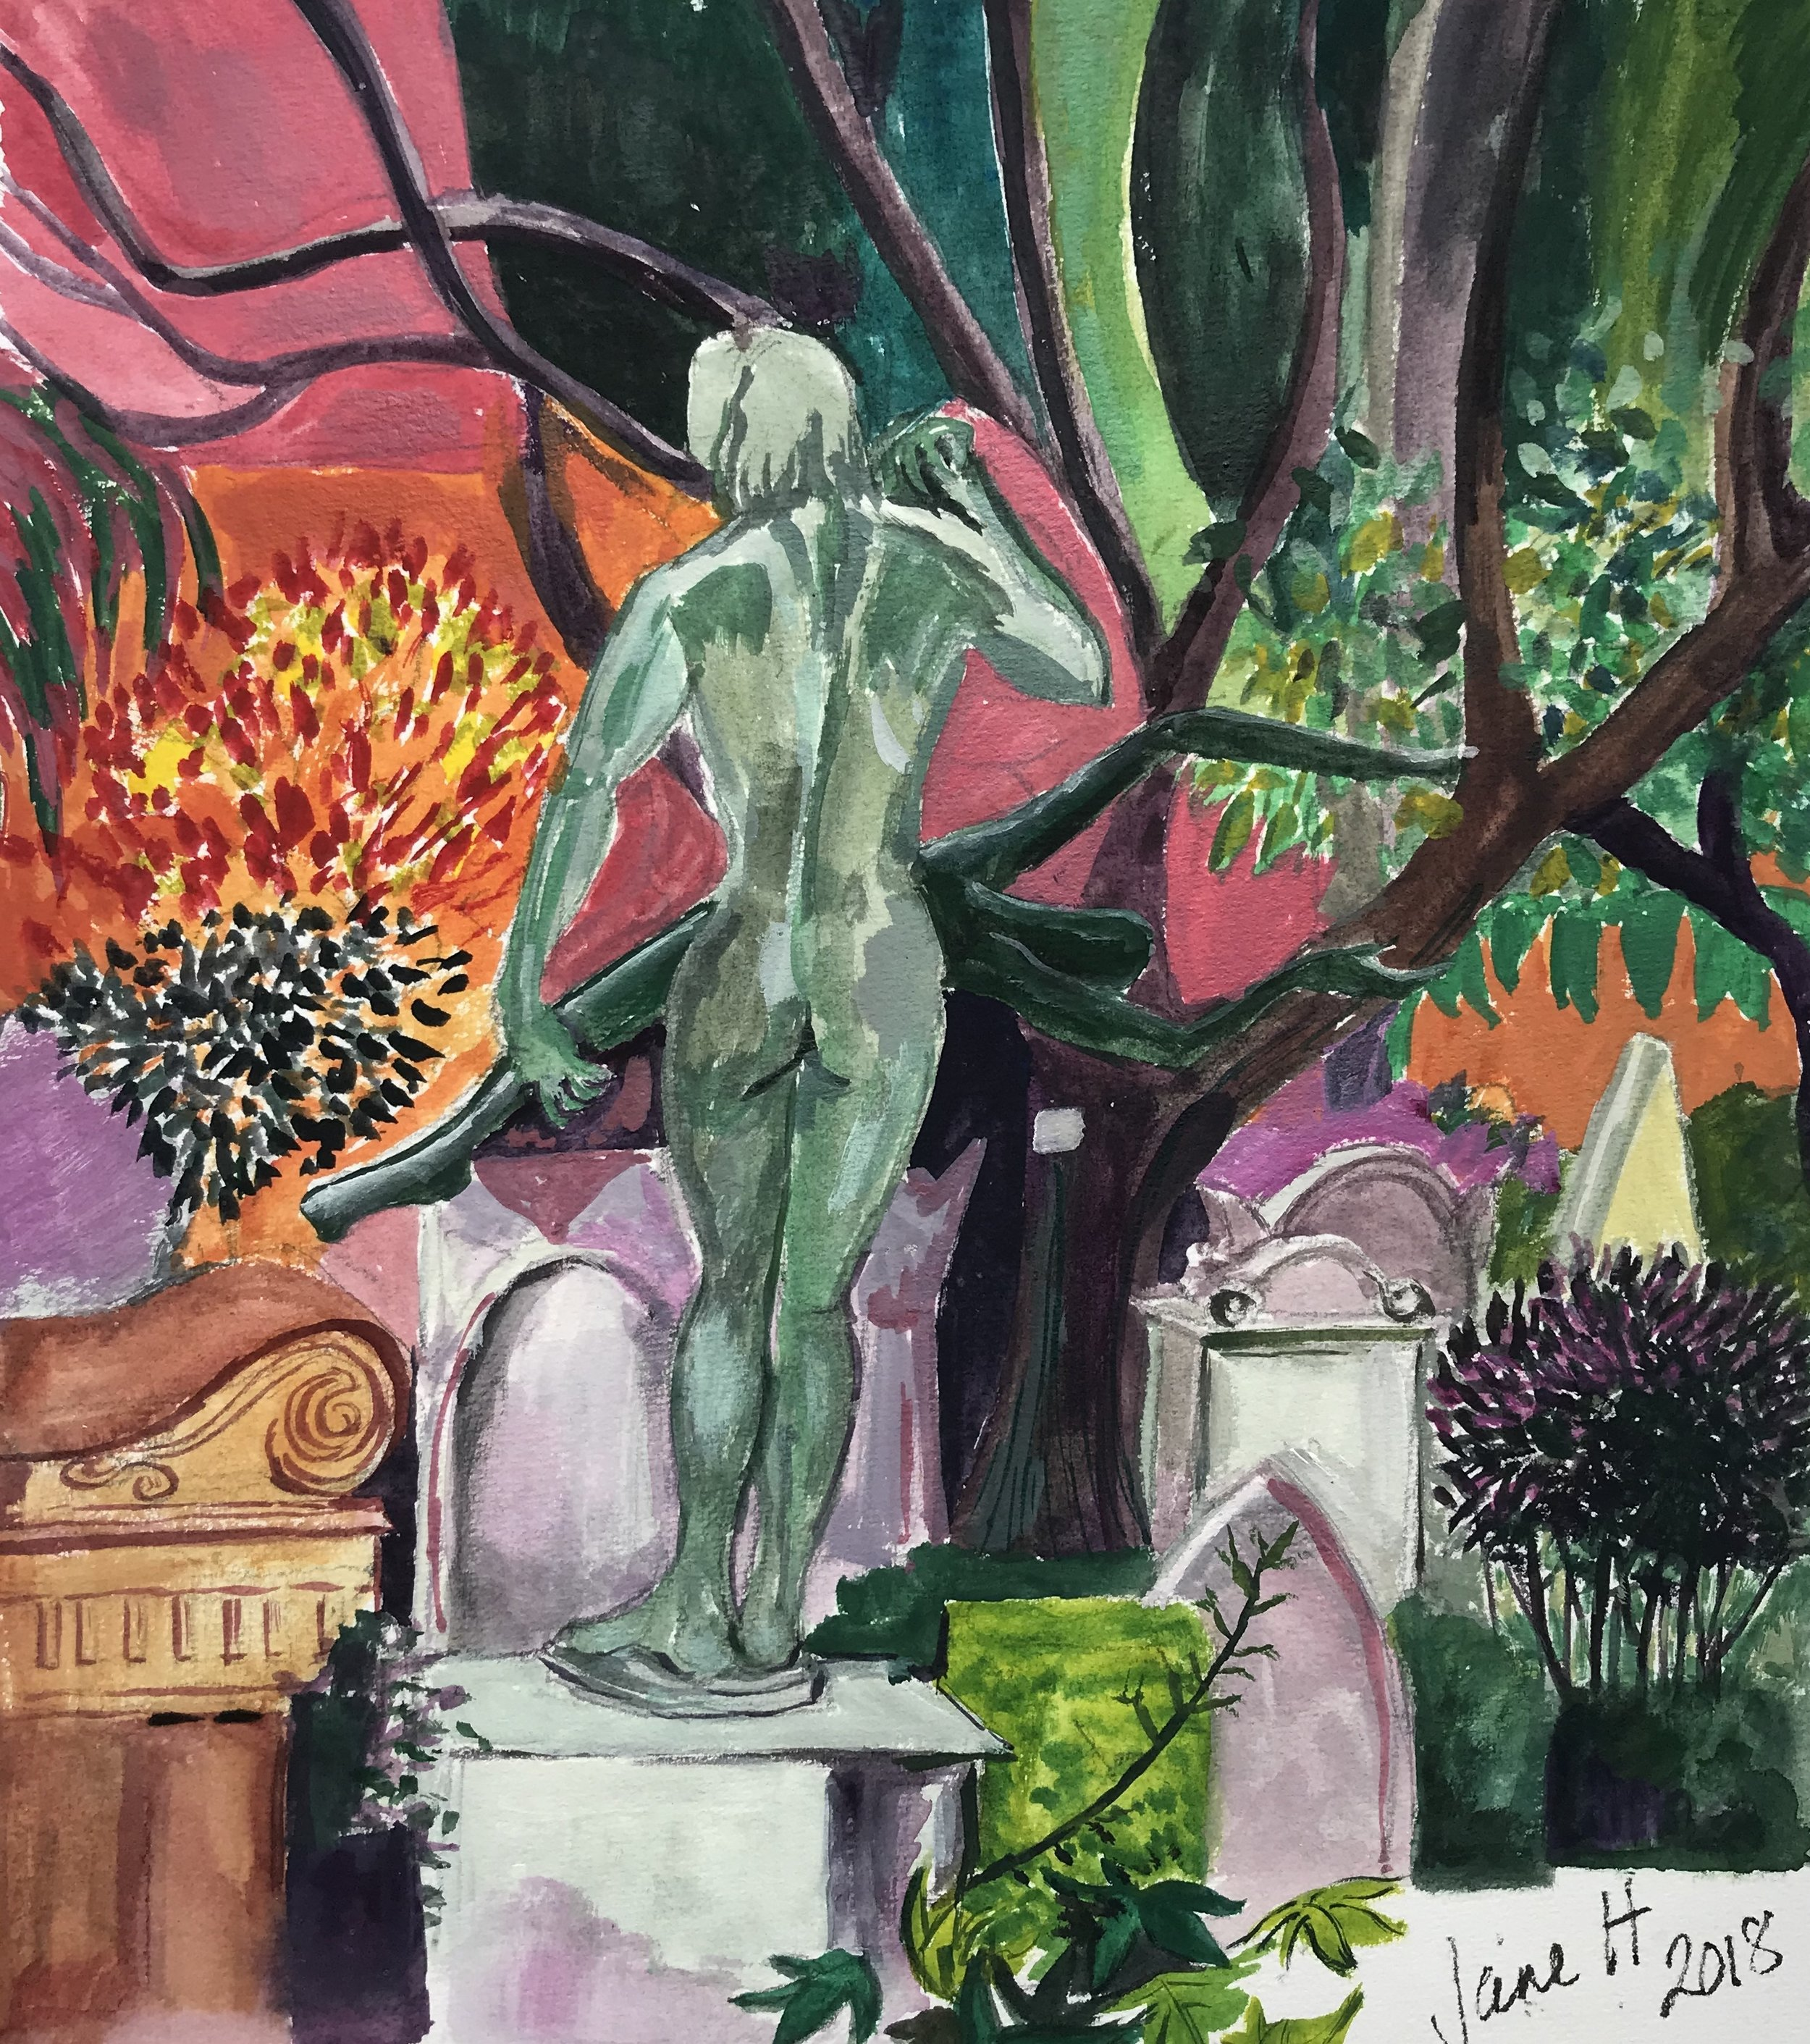 The Green Woman Non Catholic Cemetery of Rome. Gouache 39 x 45cm £70 framed